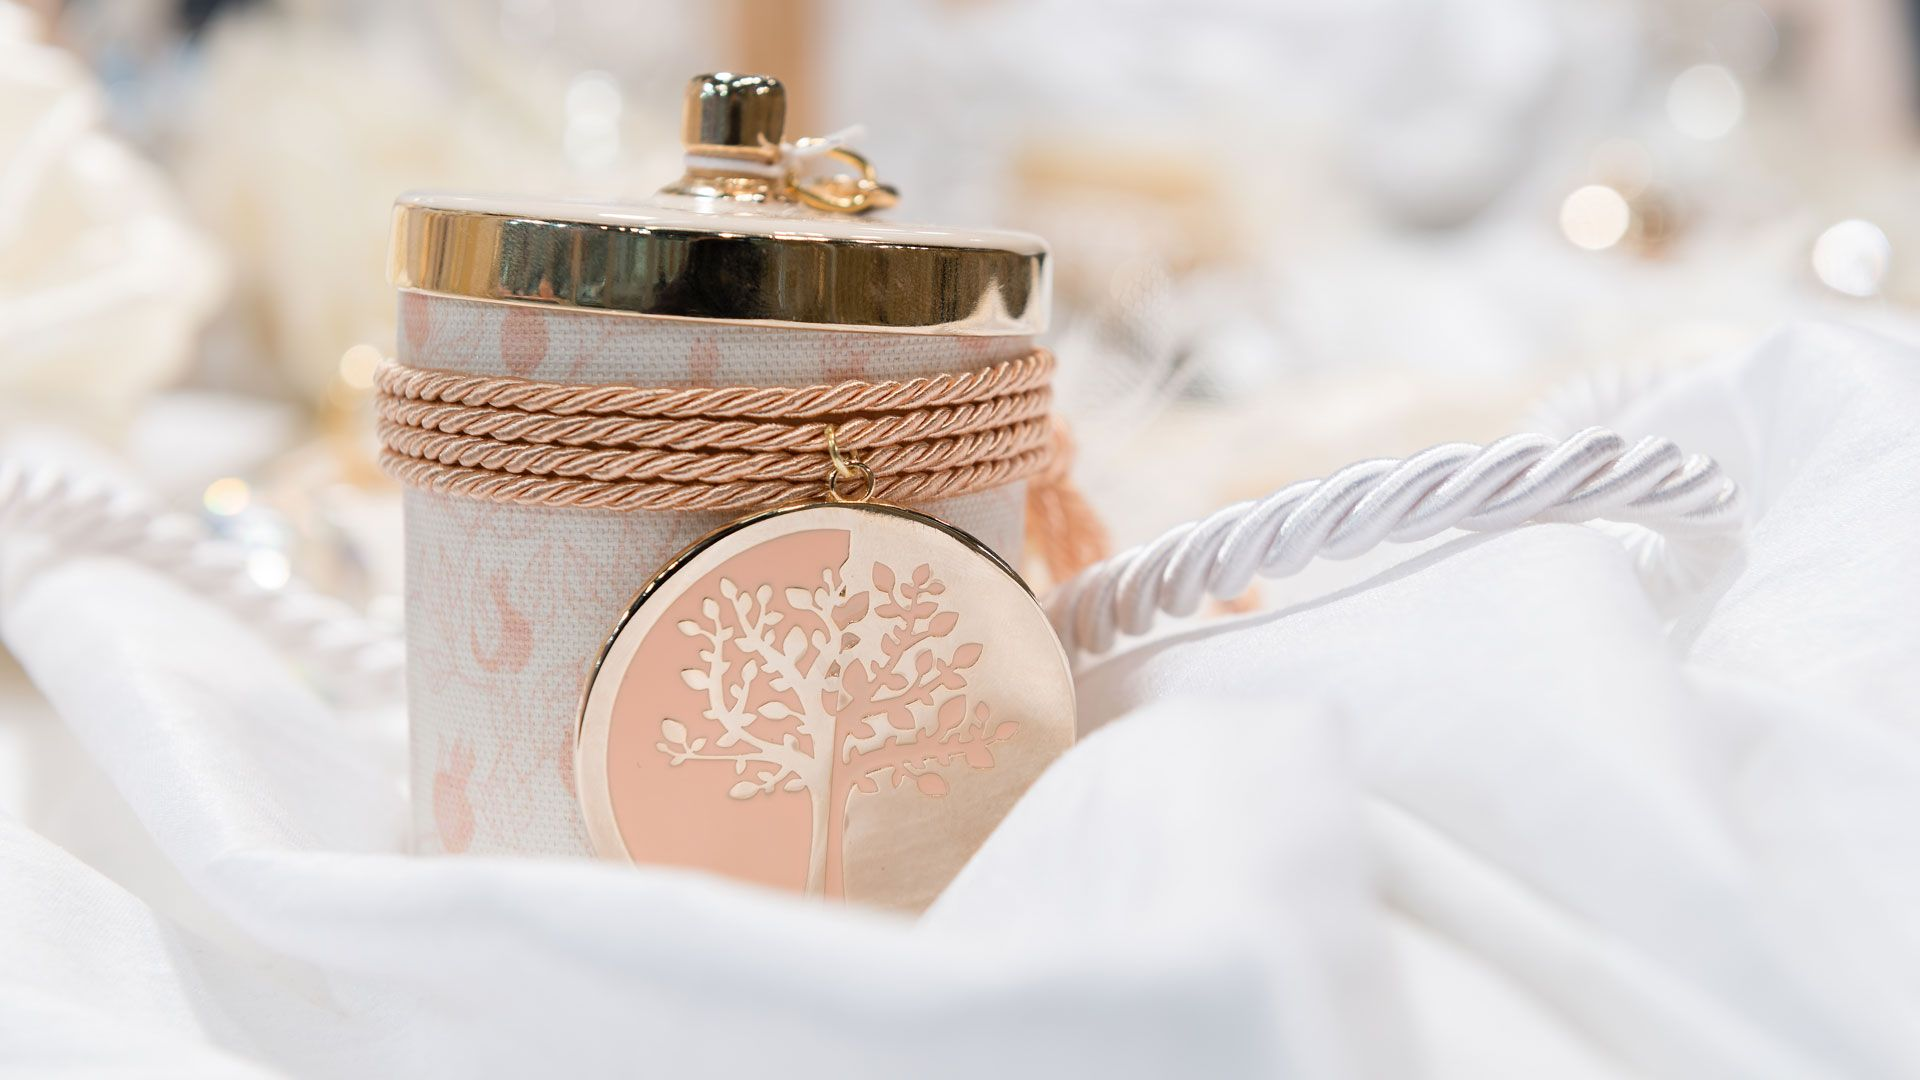 Pin by Happy Events GR on Wedding Favors/Boubounieres | Pinterest ...